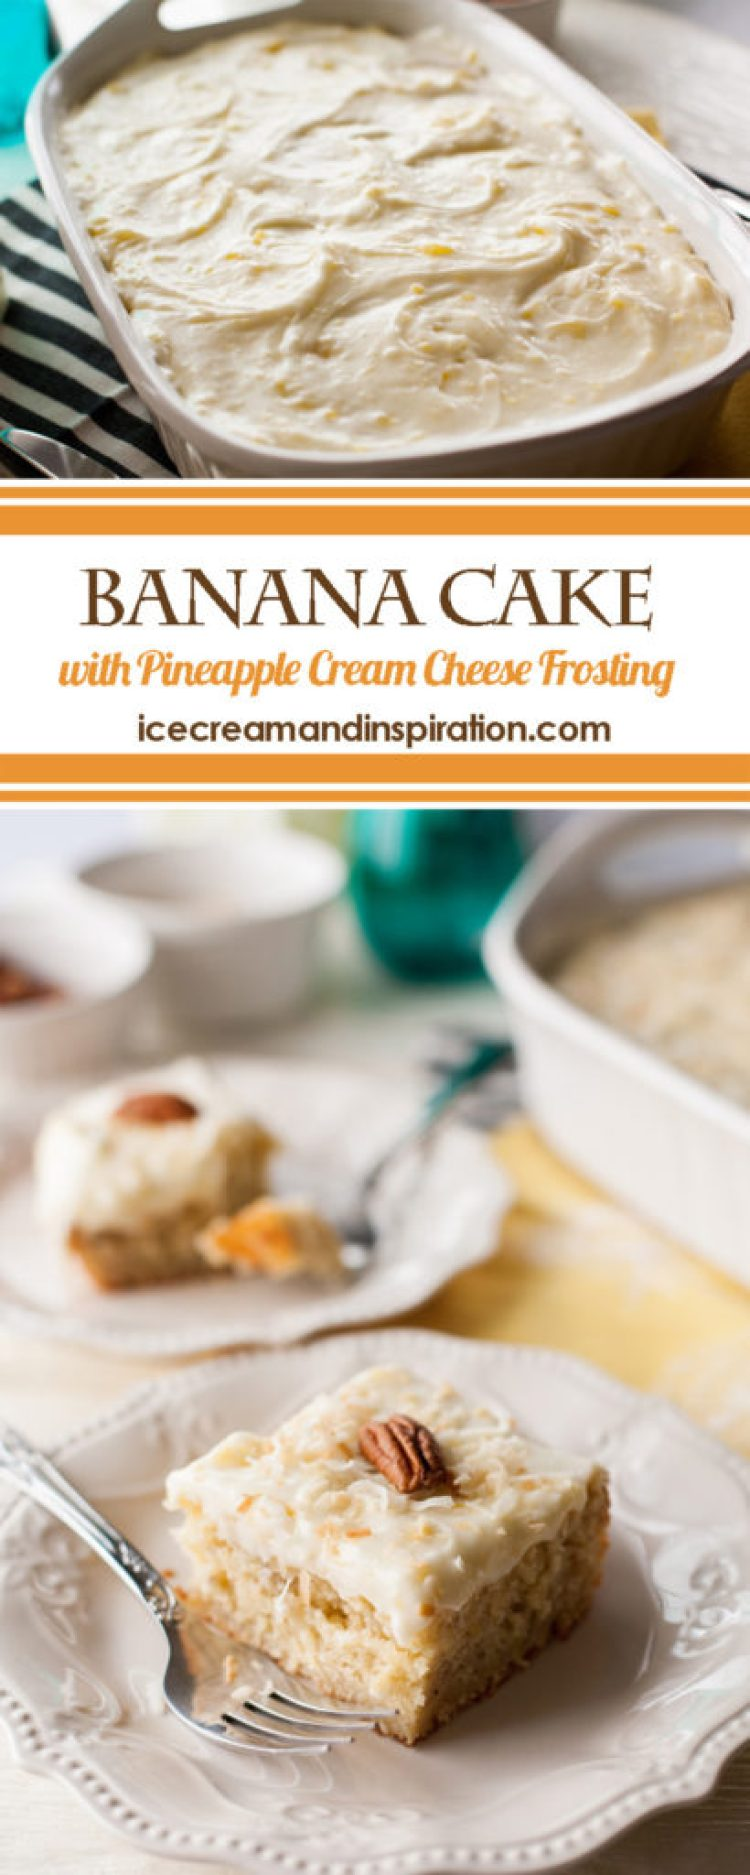 Use up your ripe bananas by making this delicious Banana Cake with Pineapple Cream Cheese Frosting! It's a tropical-themed cake that is perfect for any occasion!